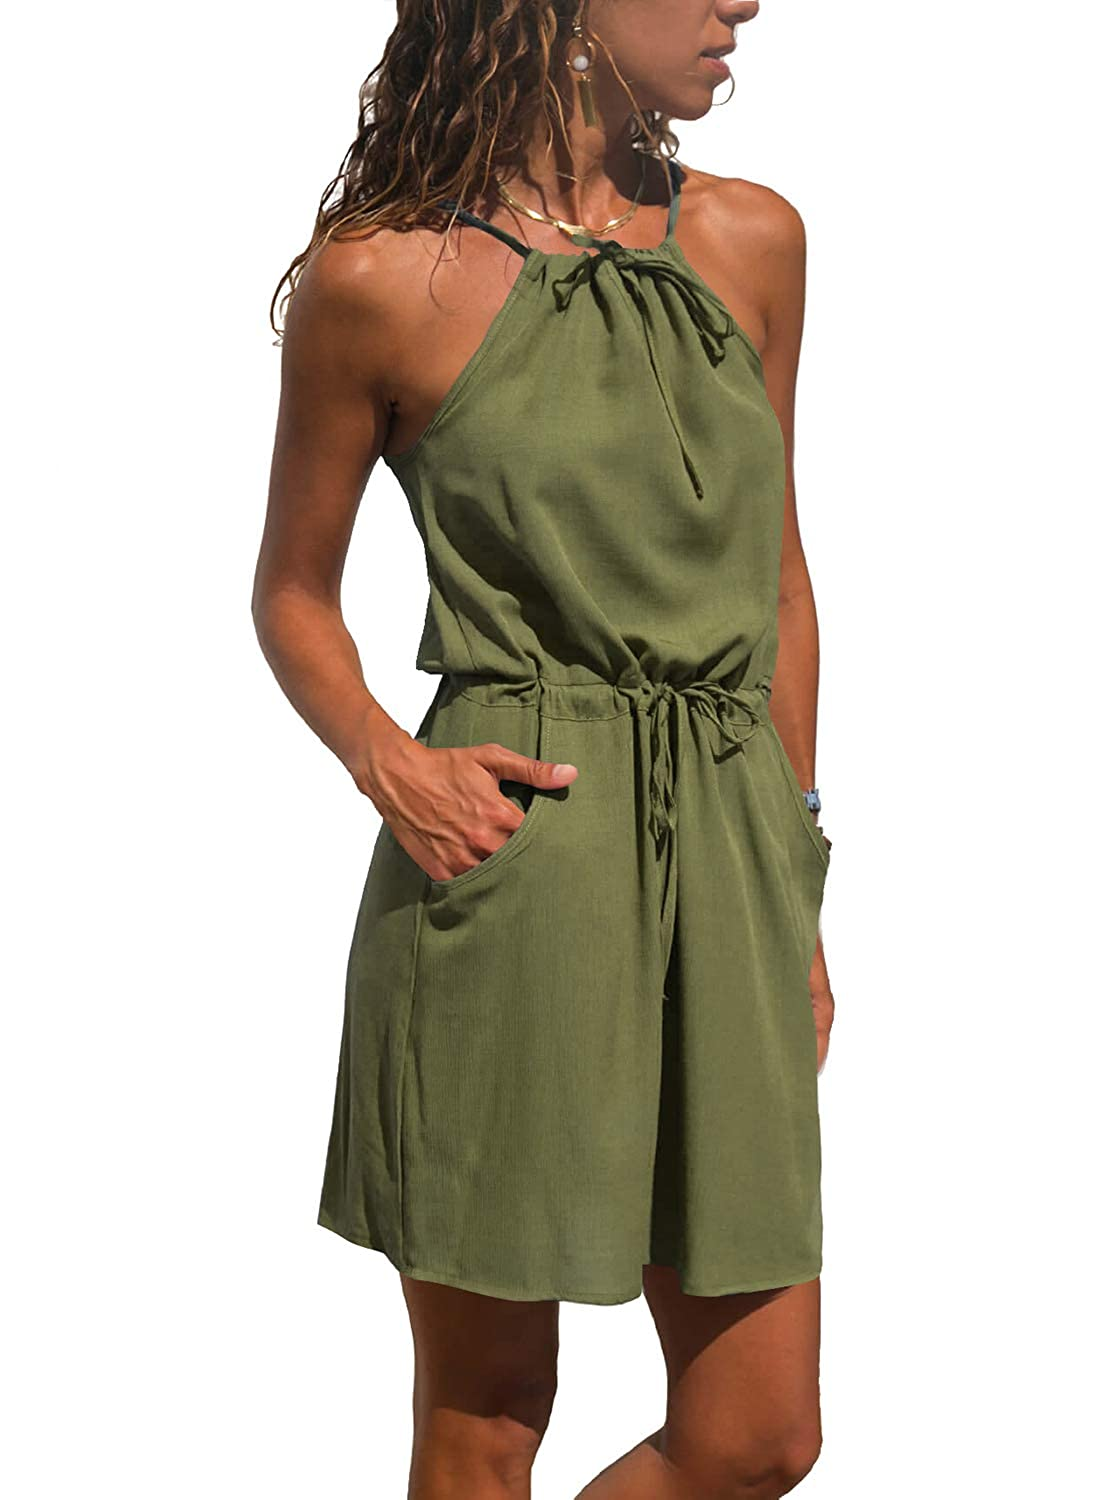 Amy Green686 sidefeel Women V Neck Halter Printed Casual Short Strap Mini Dress